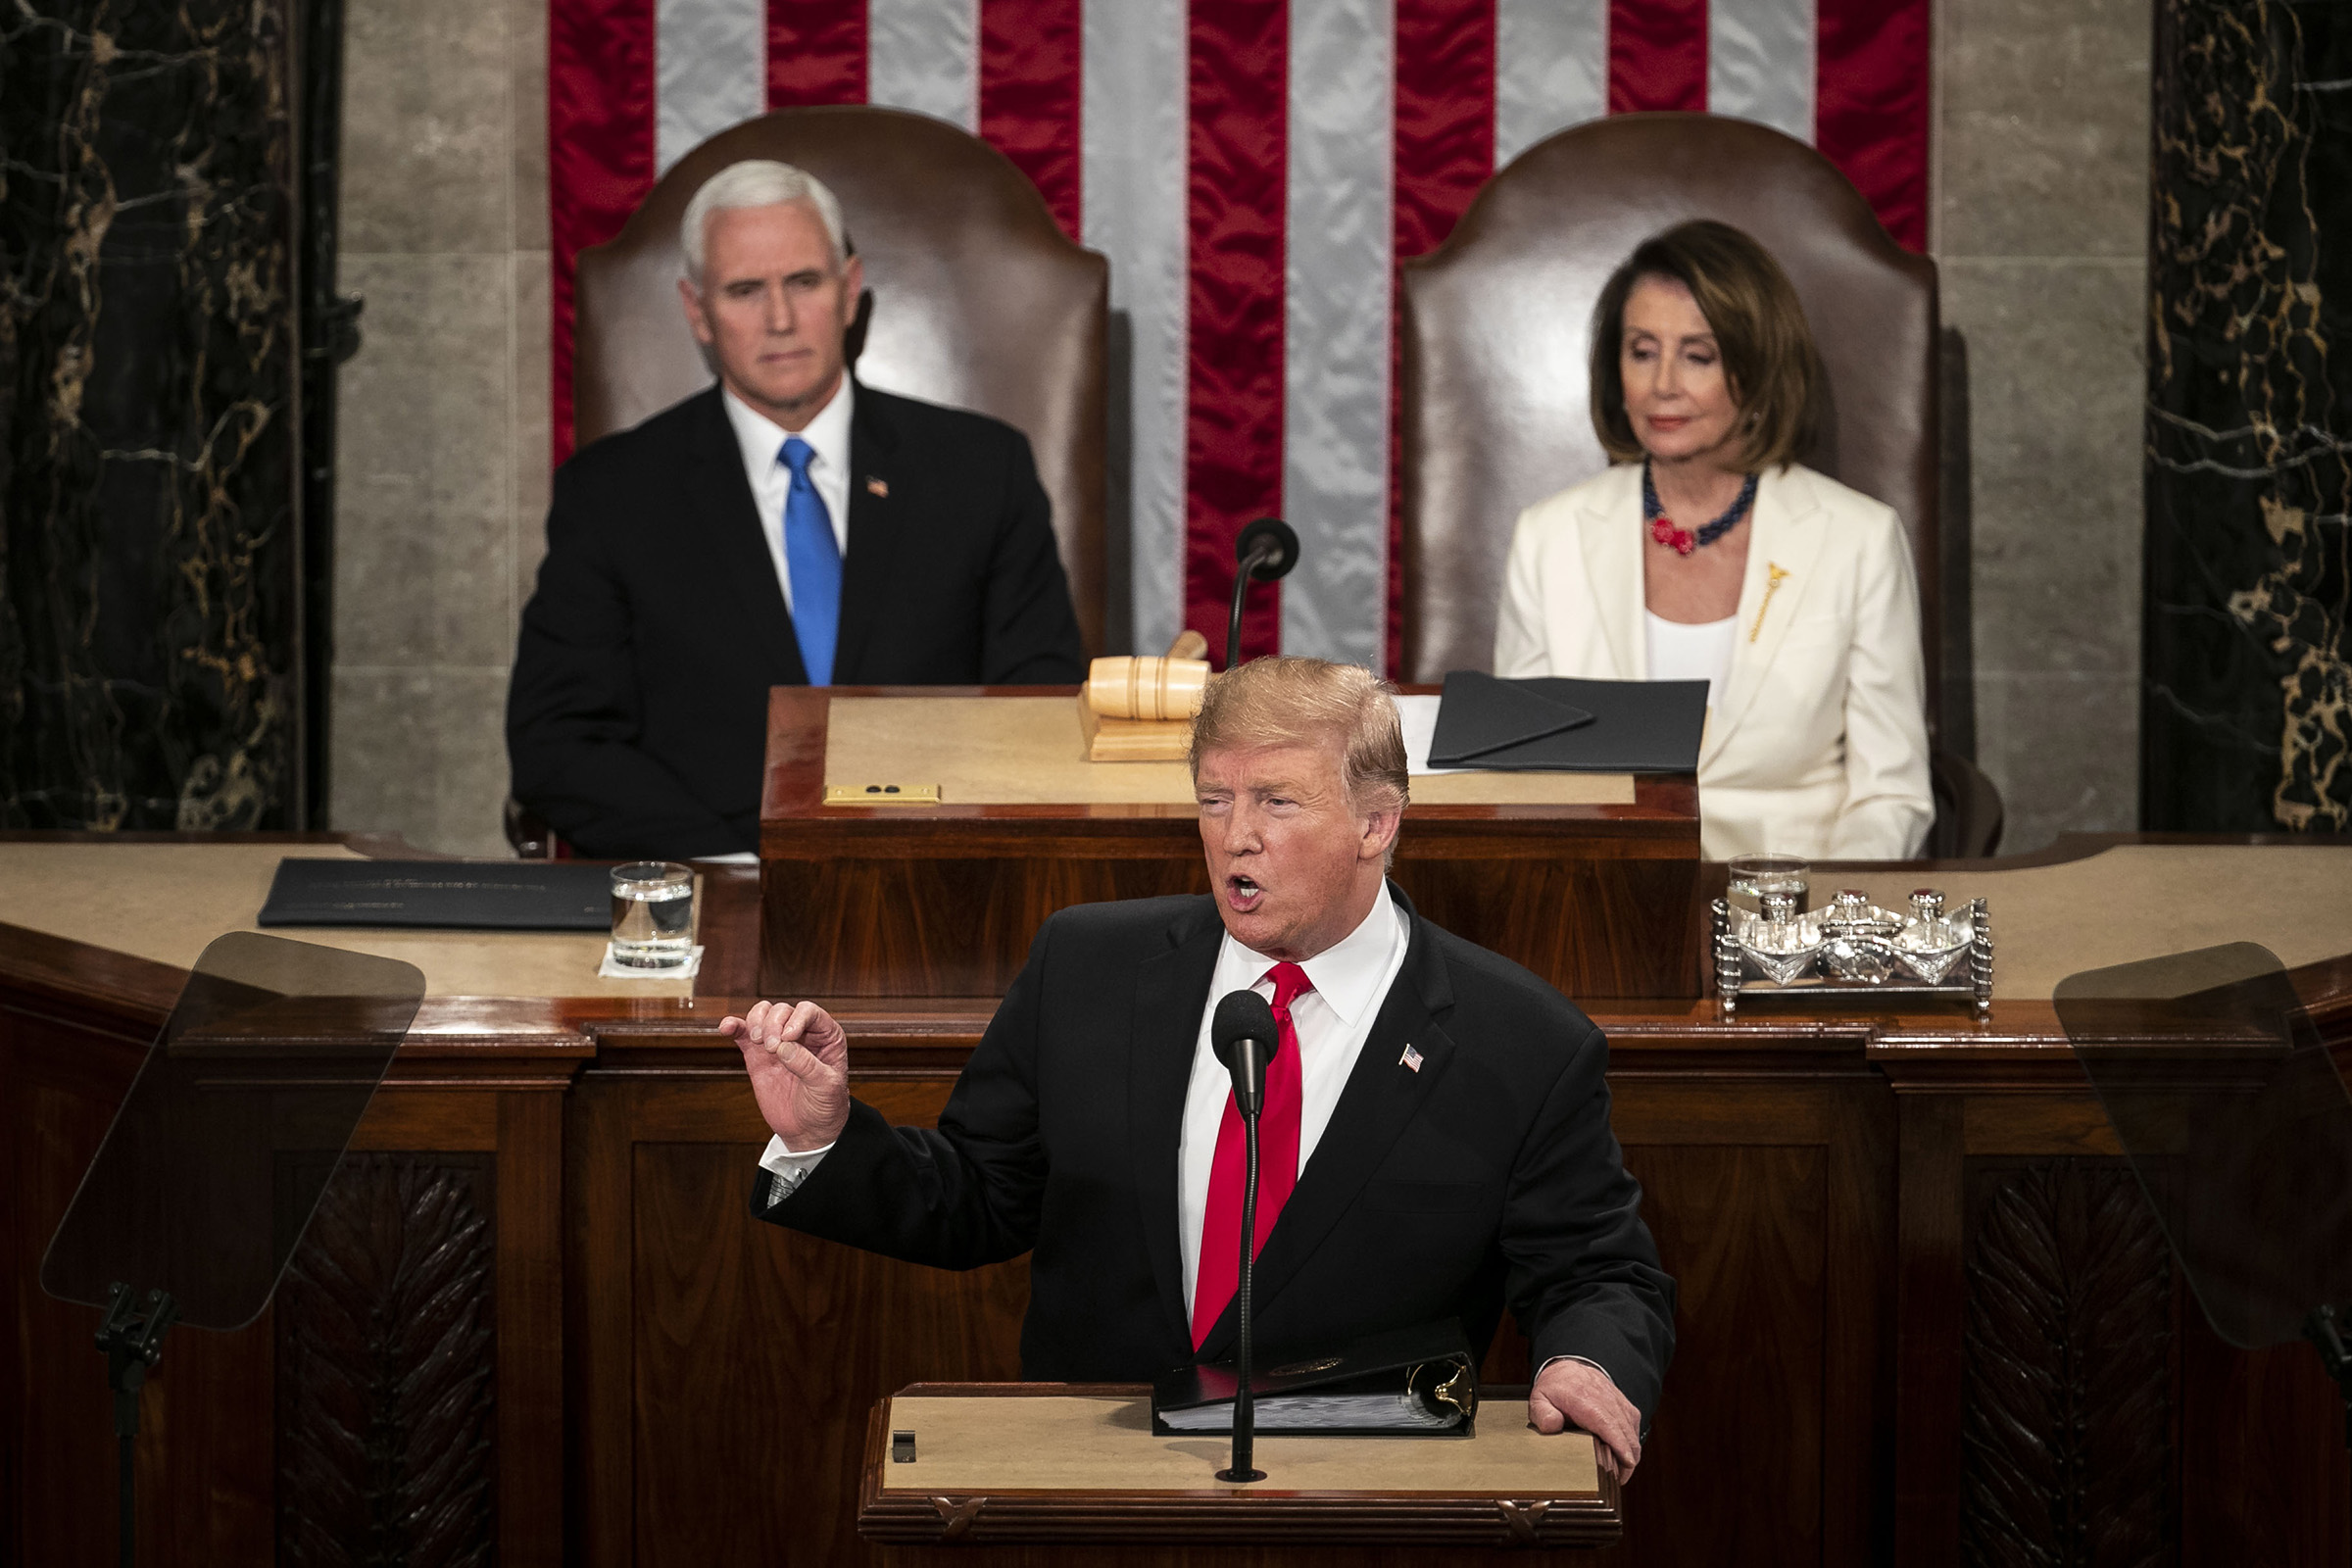 President Donald Trump delivers a State of the Union address to a joint session of Congress at the U.S. Capitol in Washington, D.C., on Feb. 5, 2019.